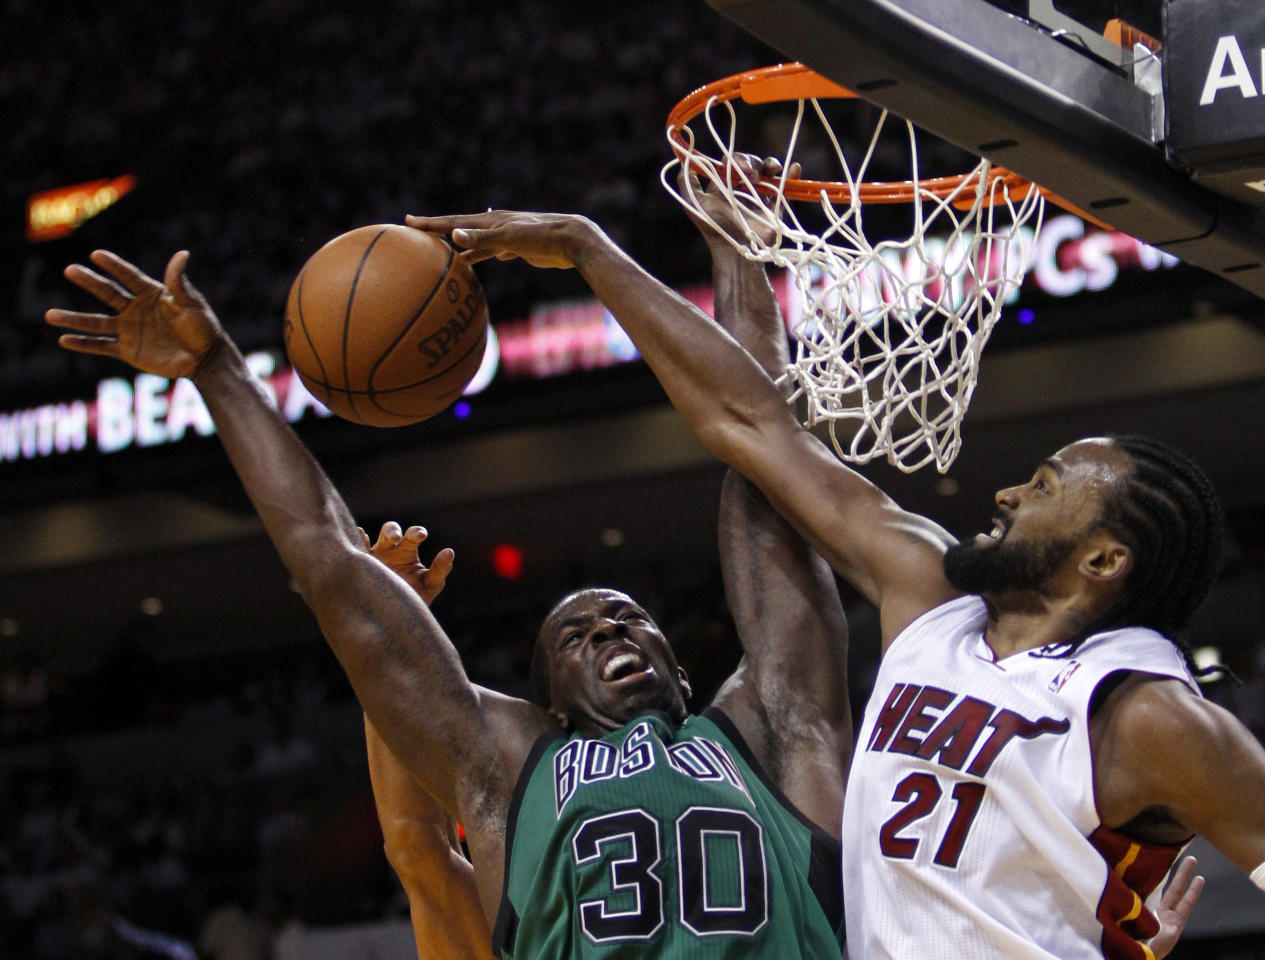 Miami Heat's Ronny Turiaf (21) blocks a shot by Boston Celtics' Brandon Bass (30) during the second half of Game 1 in their NBA basketball Eastern Conference finals playoffs series, Monday May, 28, 2012, in Miami. (AP Photo/Lynne Sladky)